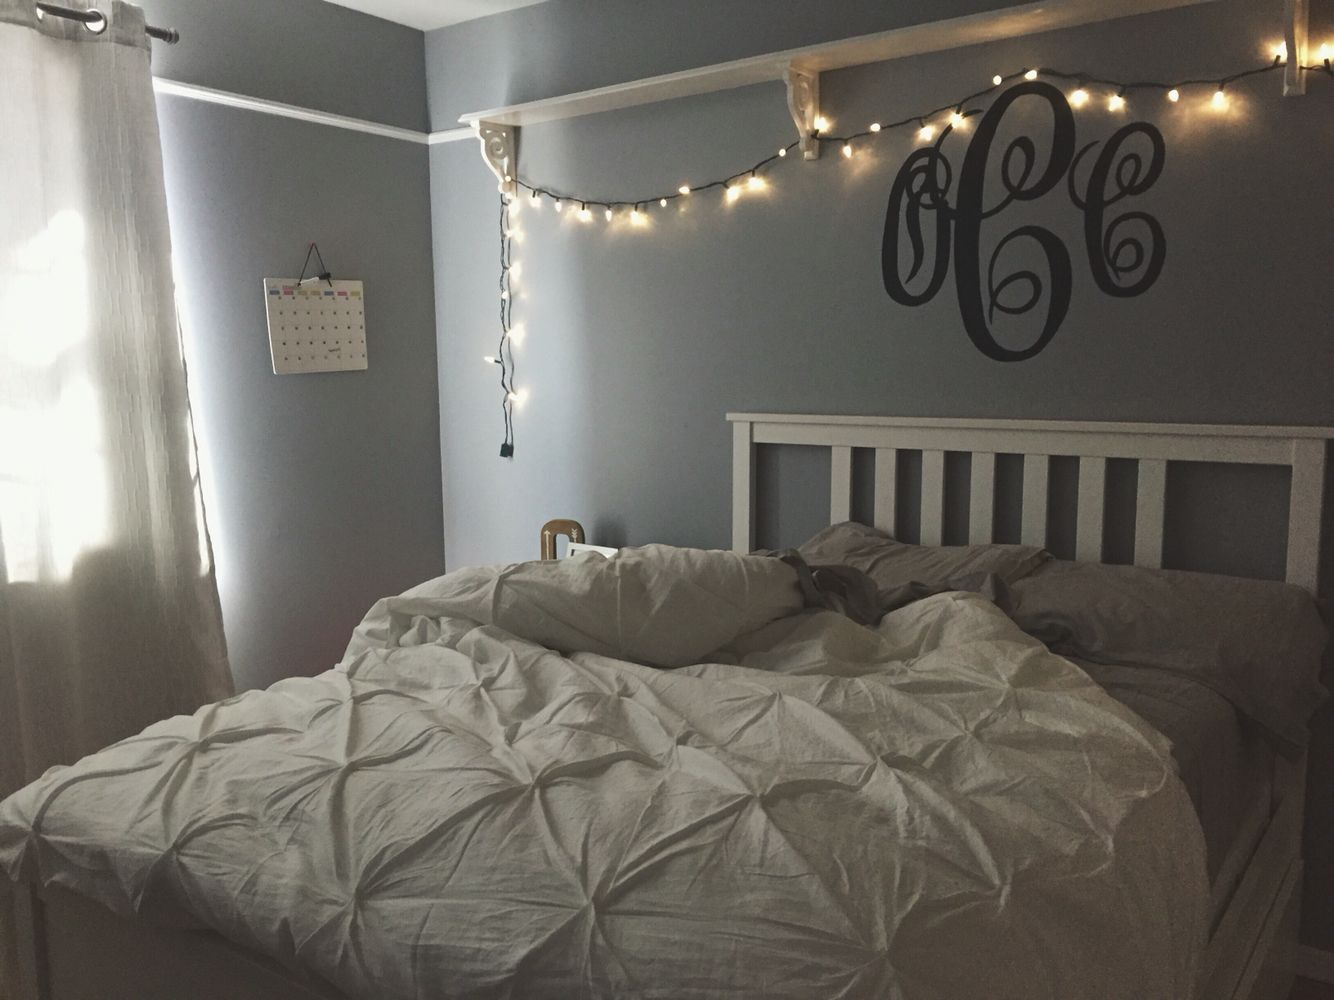 My room teenage bedroom fairy lights grey white bedroom for Bedroom ideas in grey